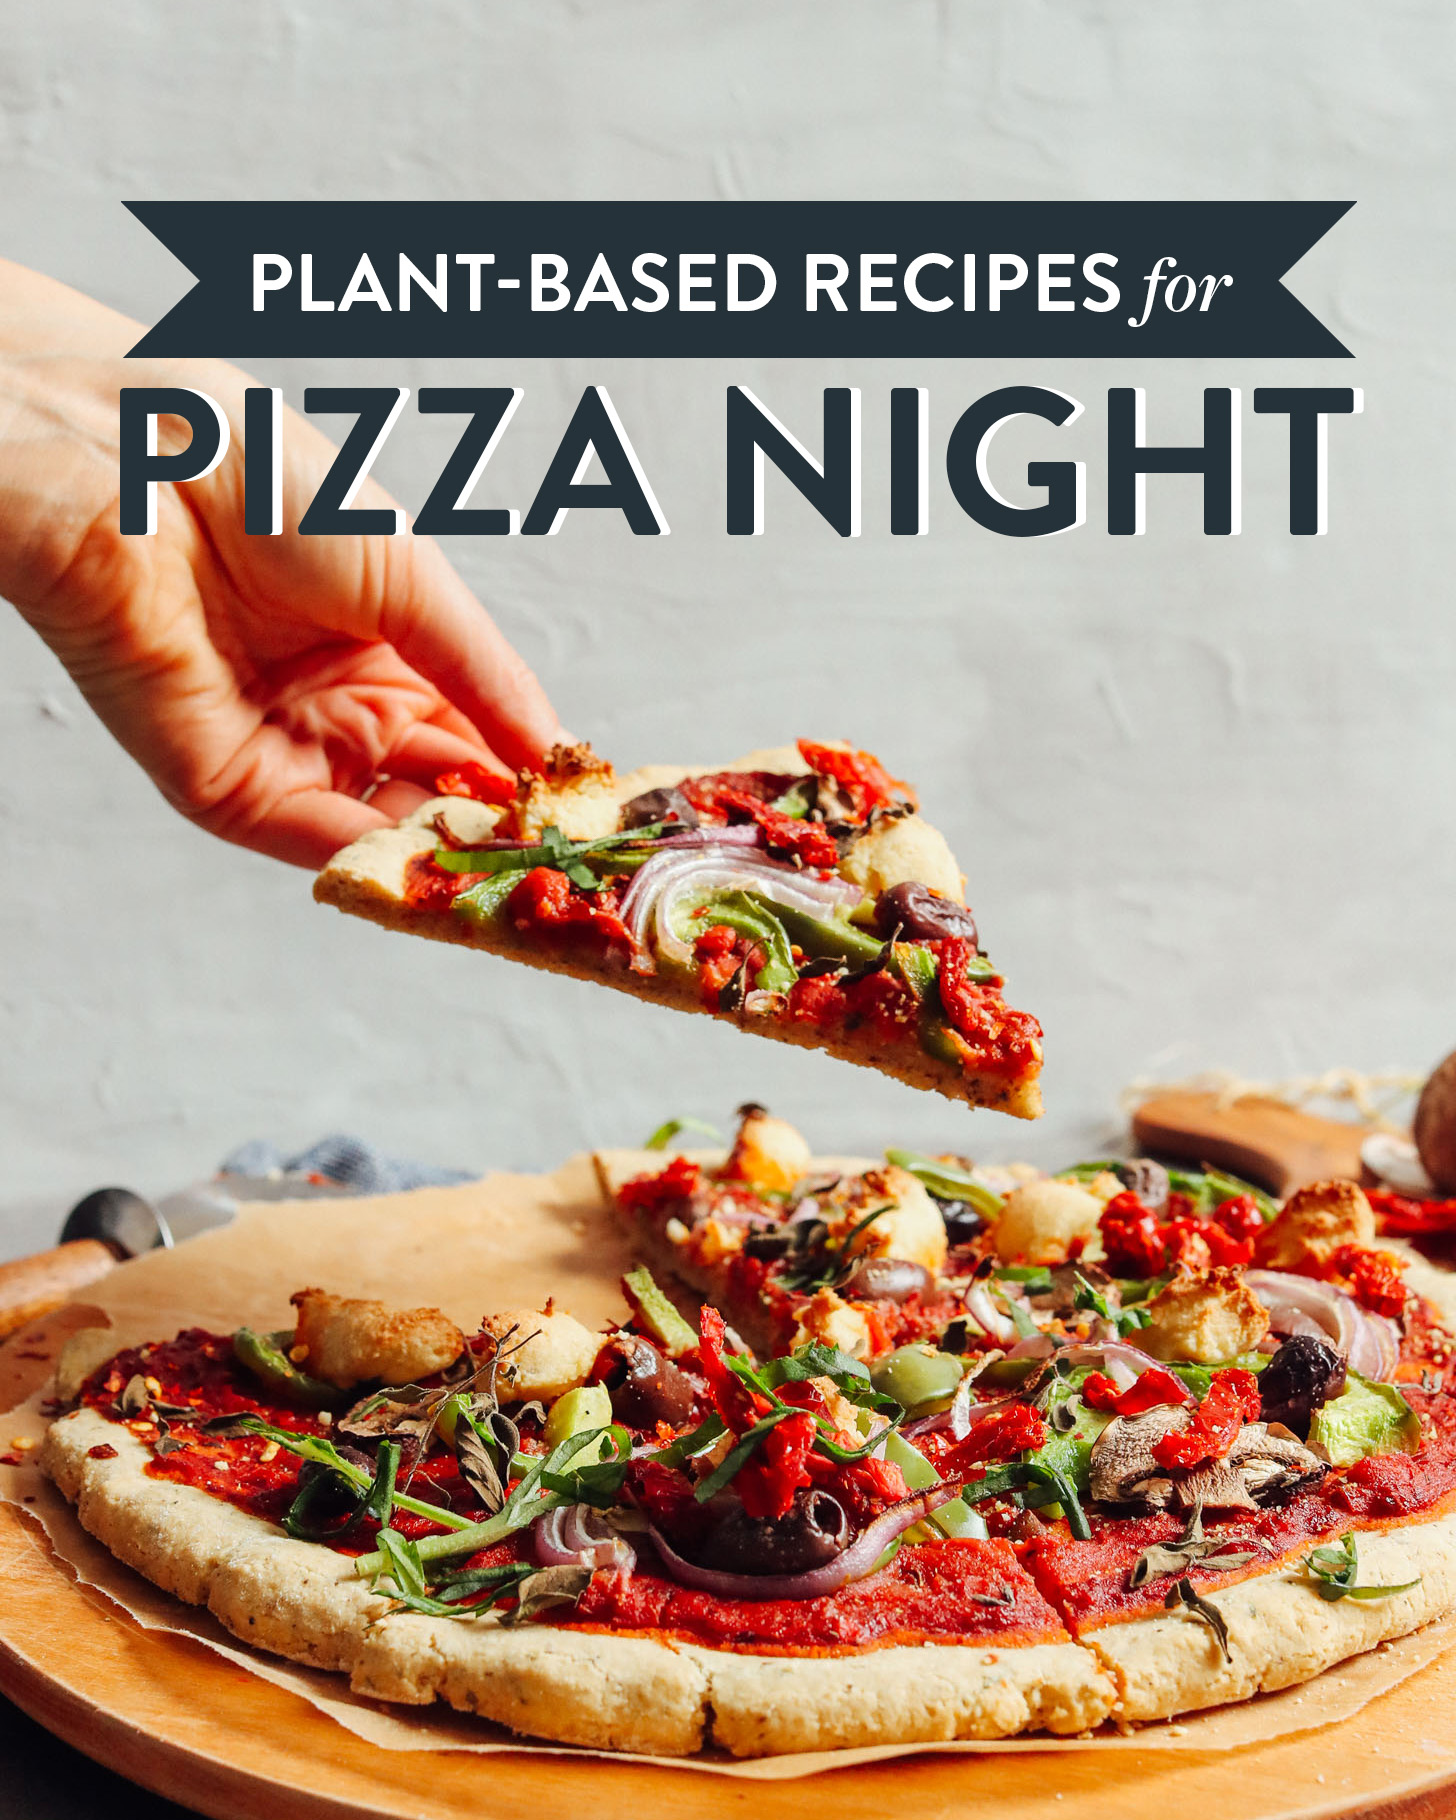 Picking up a slice of pizza for our Plant-Based Recipes for Pizza Night roundup